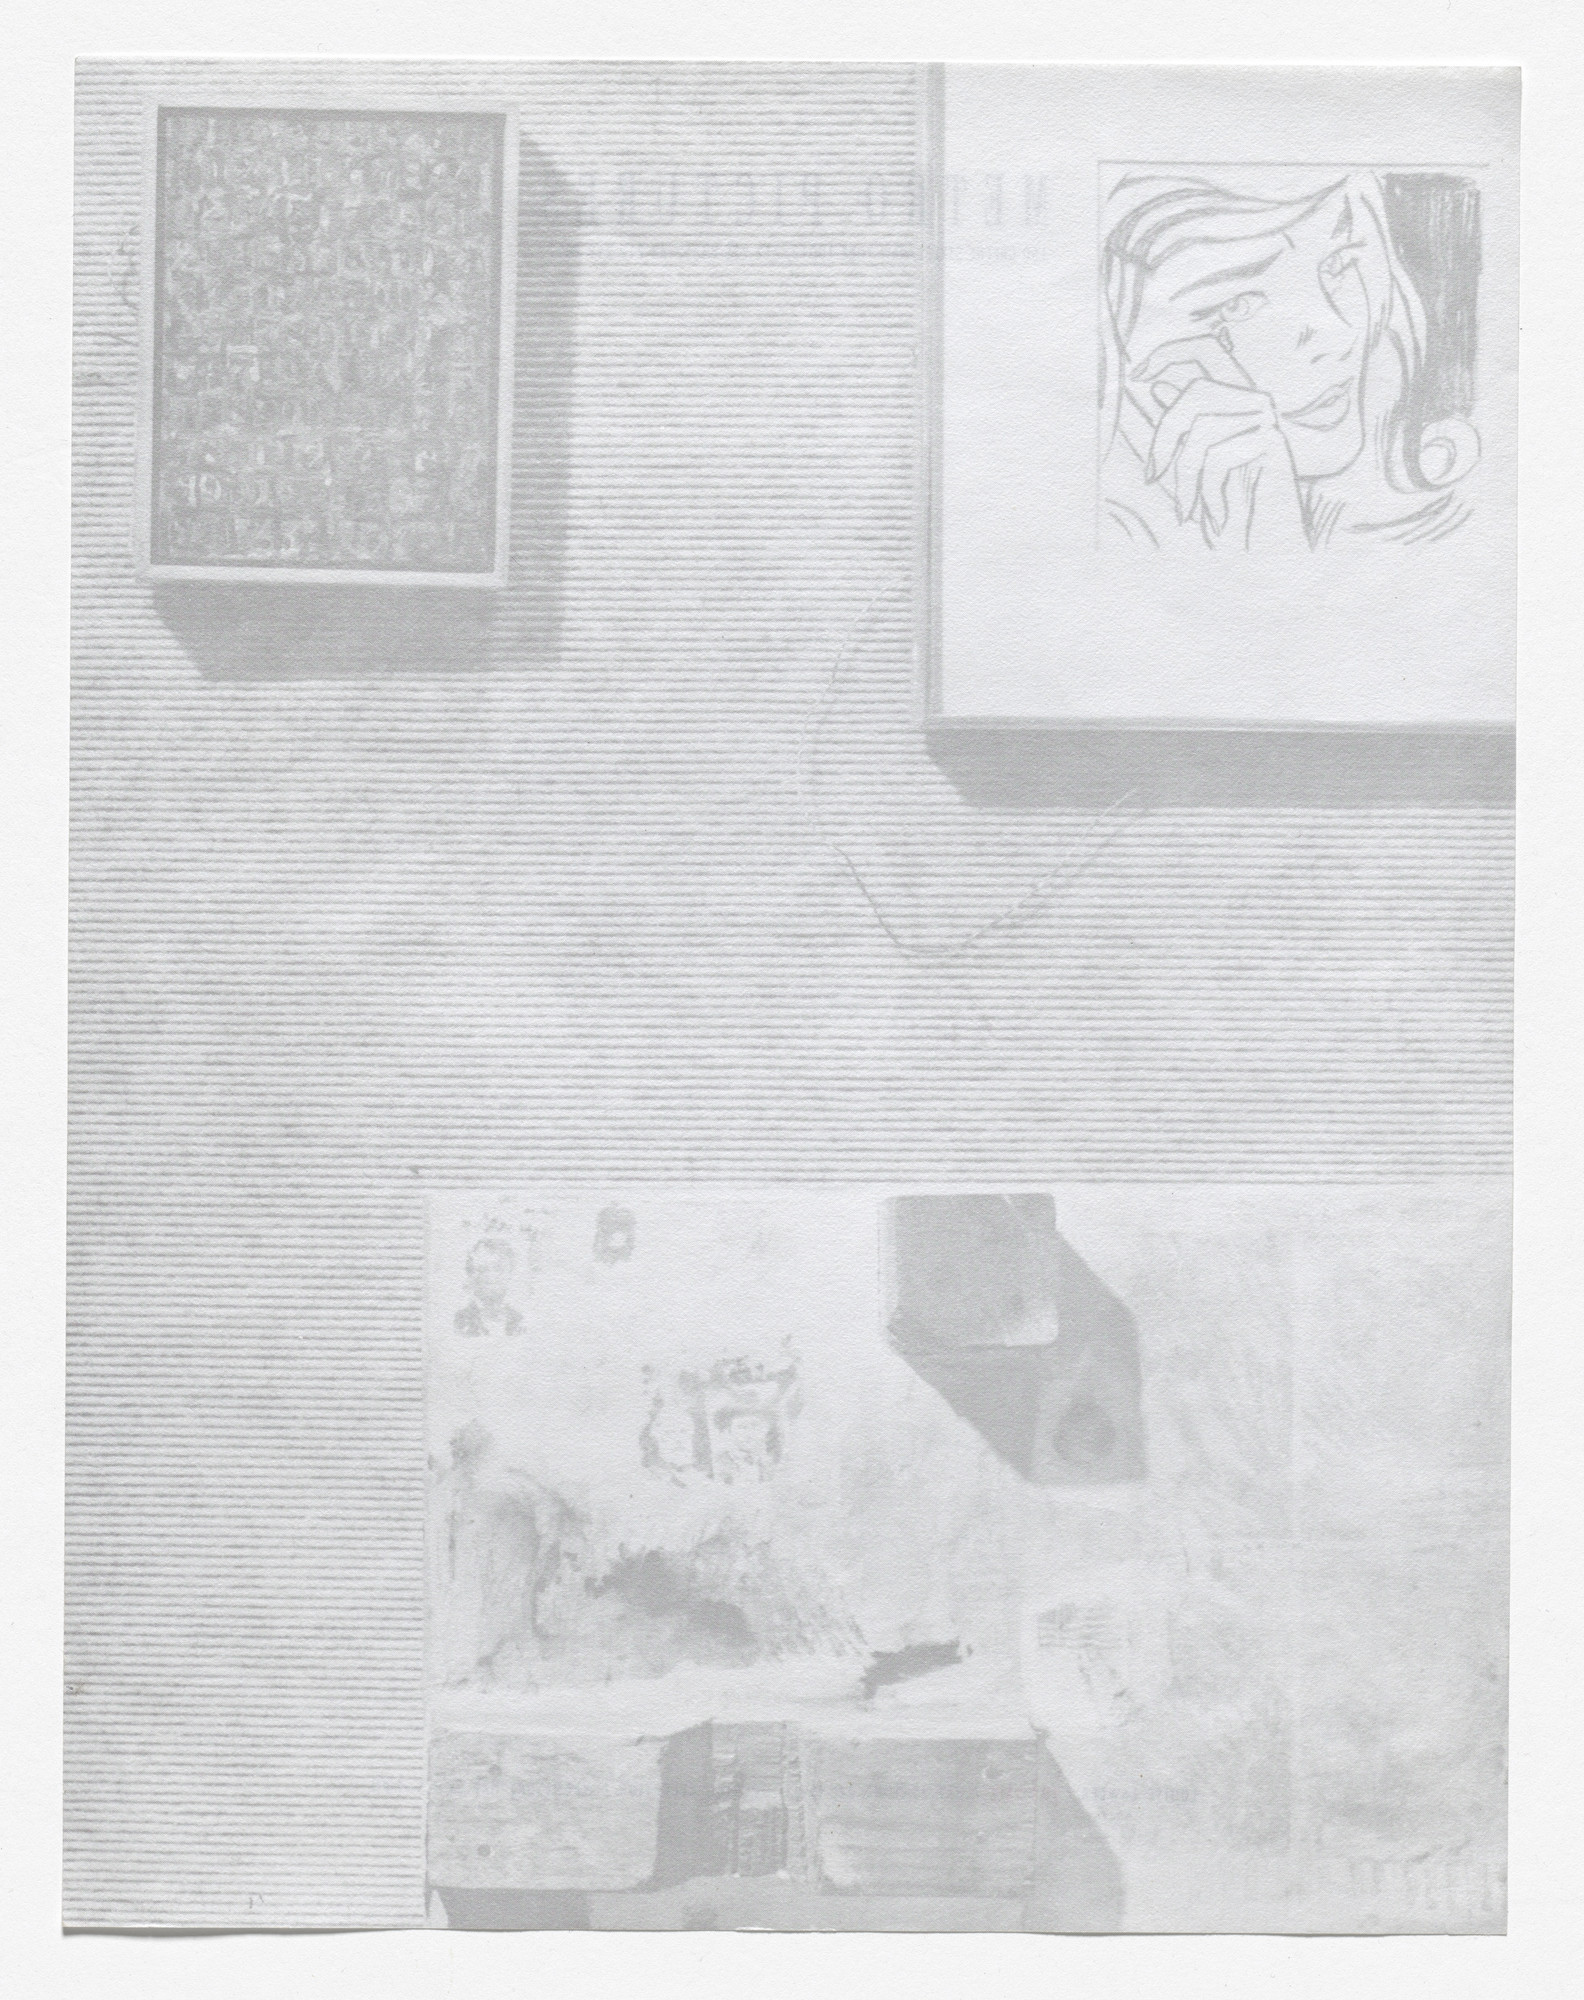 Louise Lawler. Stationery for For Sale, Metro Pictures, New York, May 25–June 22, 1991. 1991